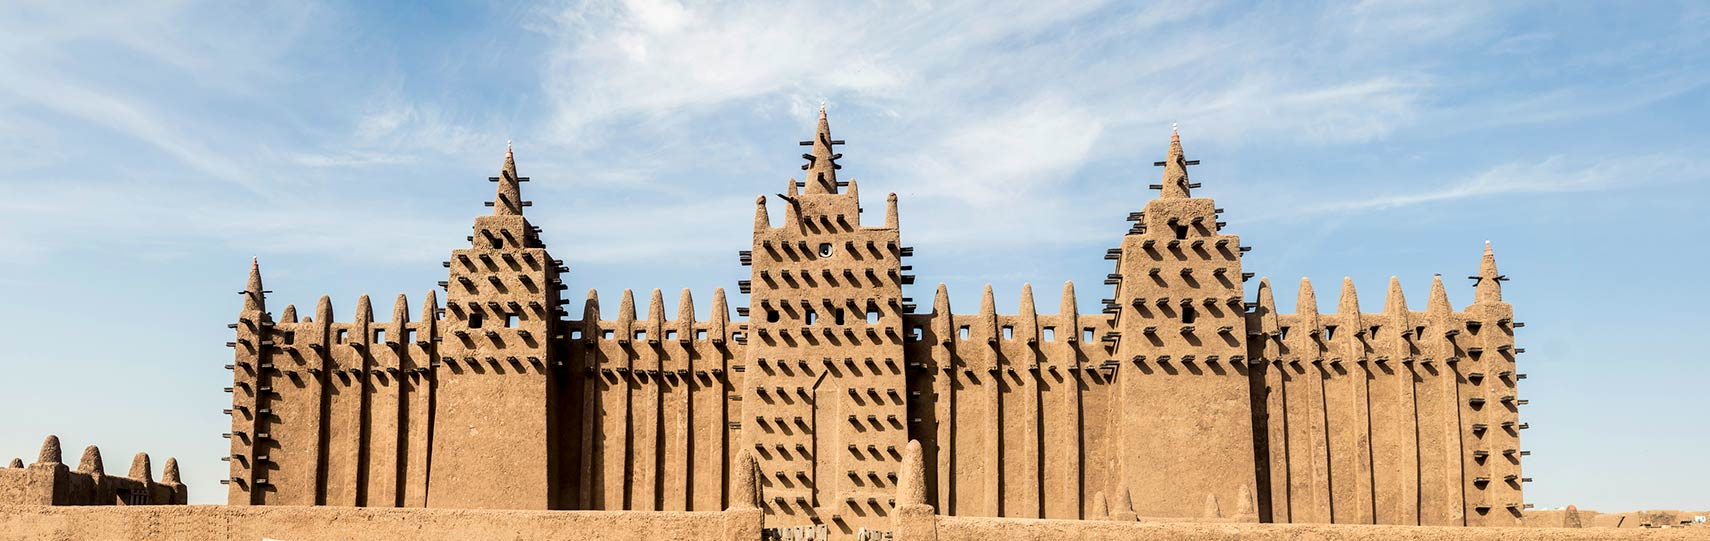 Adobe Great Mosque of Djenné in Mali